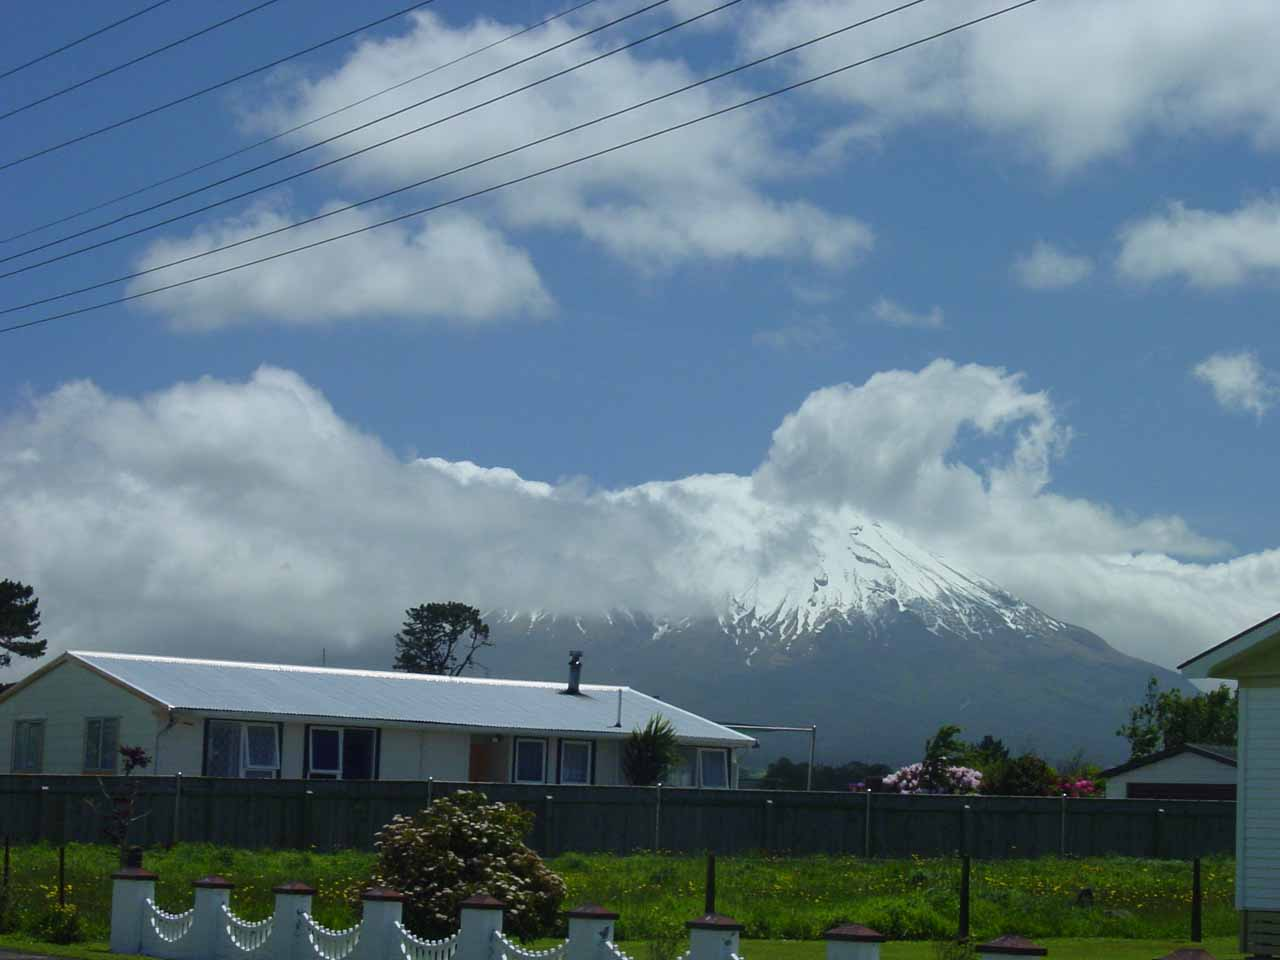 In our first visit to Dawson Falls, we drove from Stratford directly to the falls, where we got these partial views of the snow-capped Mt Taranaki along Opunake Rd